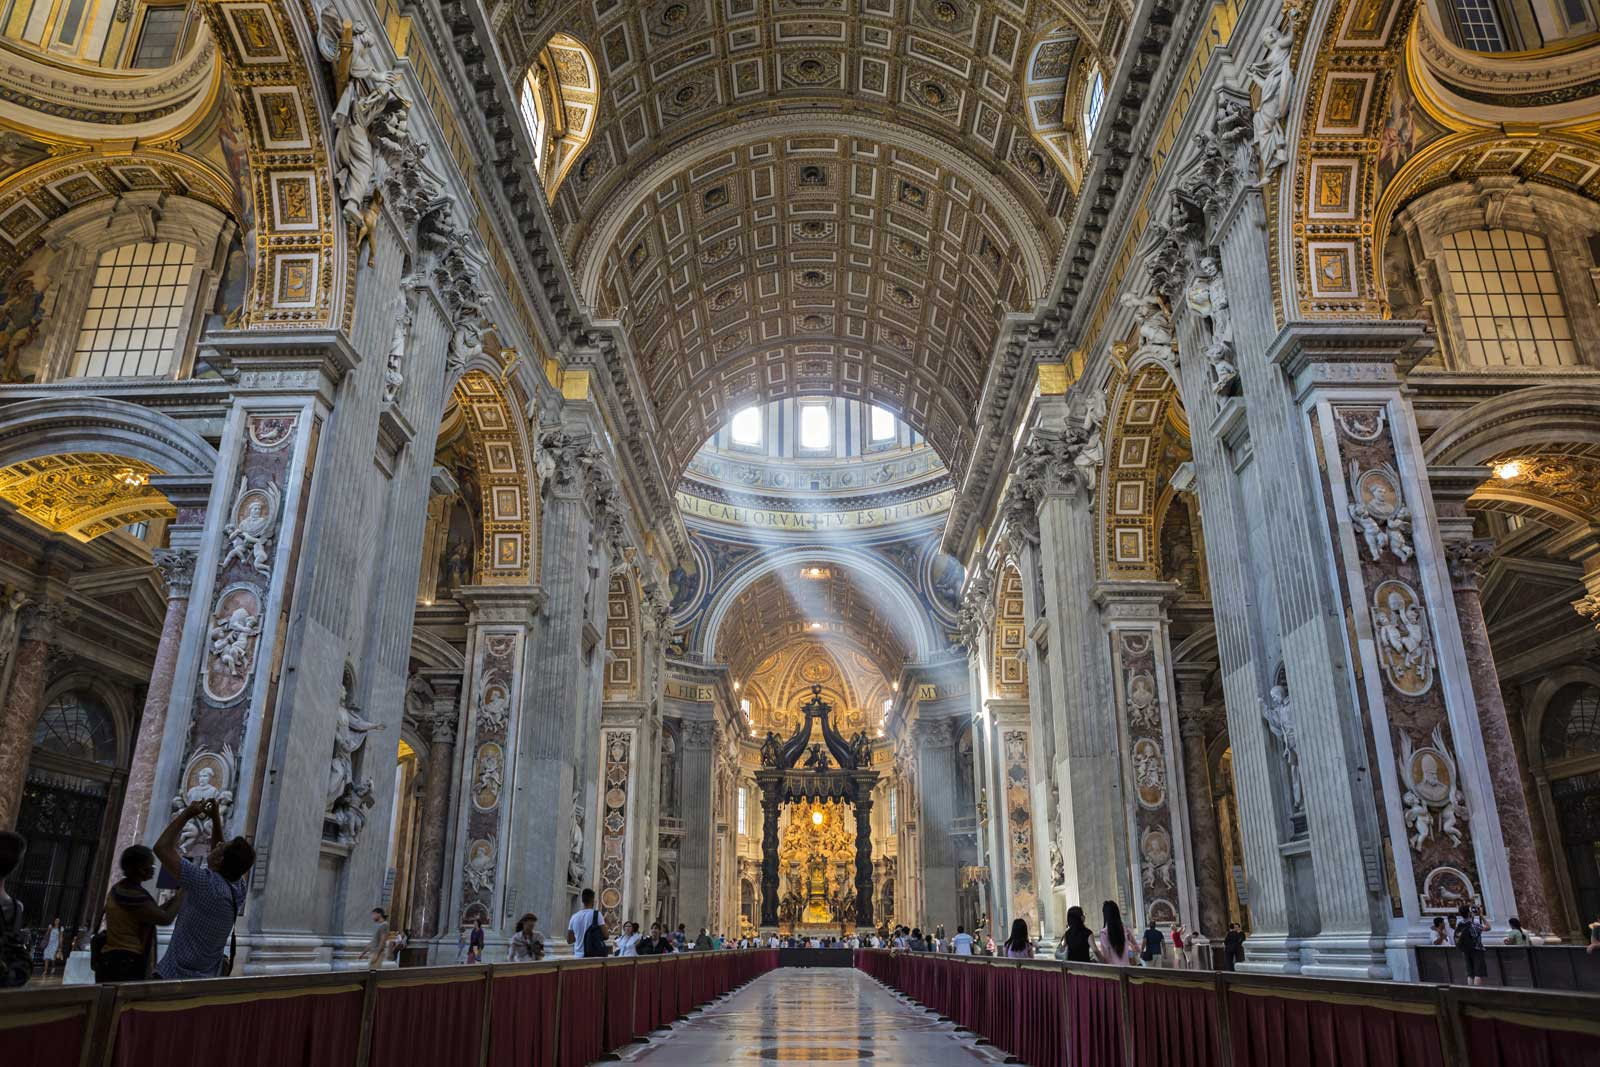 Observe the largest church in the world and one of the most significant - St. Peter's Basilica. This Renaissance-style church designed by Bramante is as impressive inside as it is on the outside. Discover the many treasures within this religious temple, also one of the most popular sights in Rome, Italy.